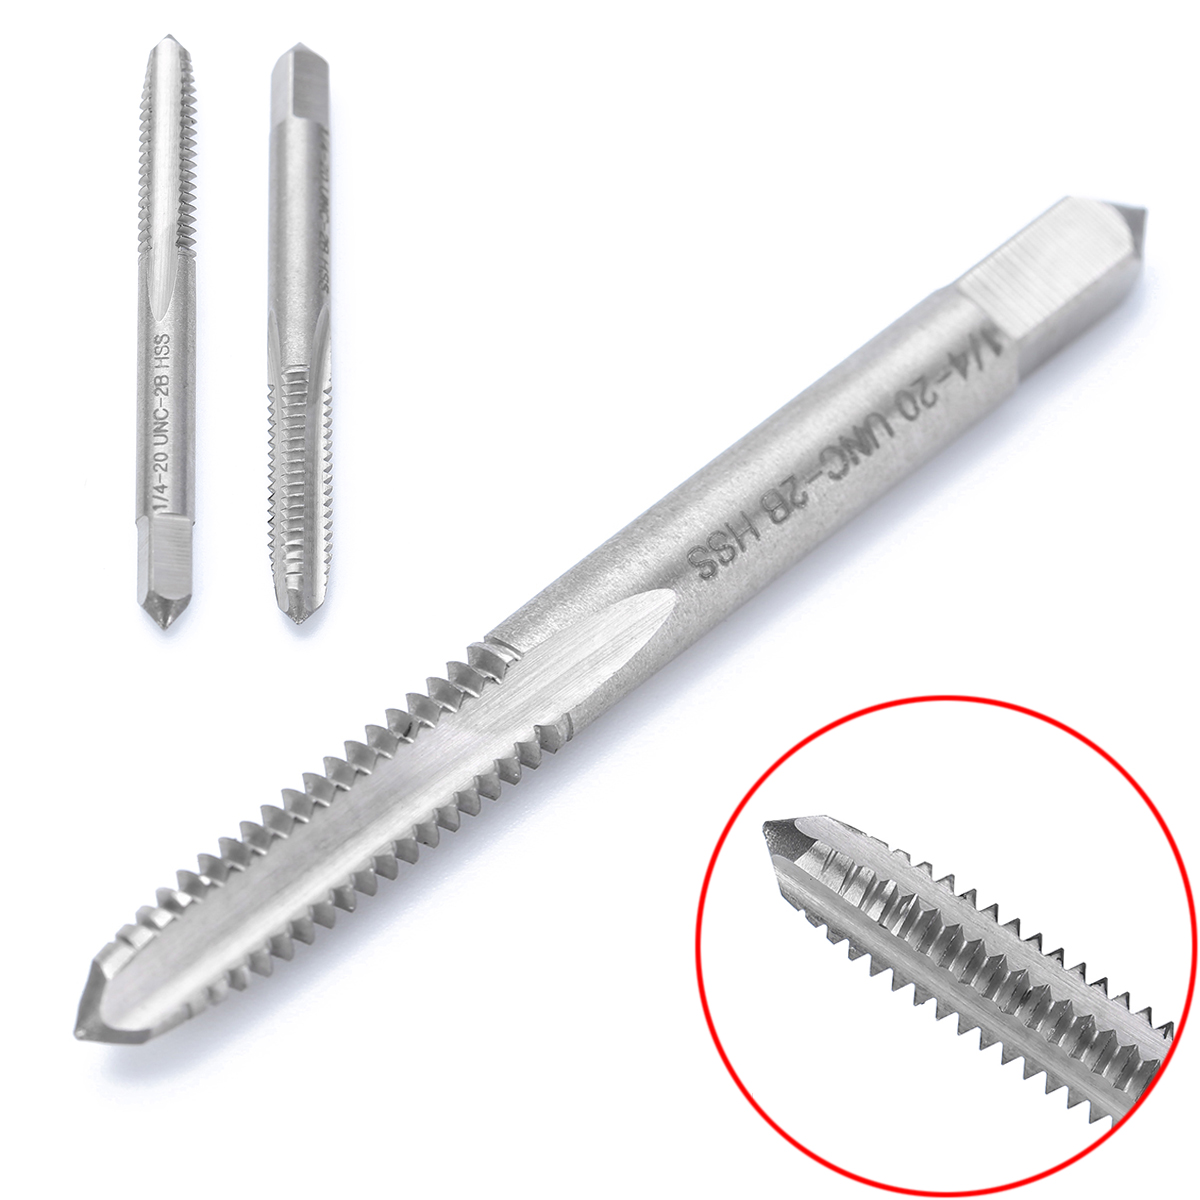 1pc 1/4-20 UNC-2B HSS Right Hand Thread Drill Screw Tap 70mm Spiral Point Straight Flute Hand Drilling Tools Mayitr